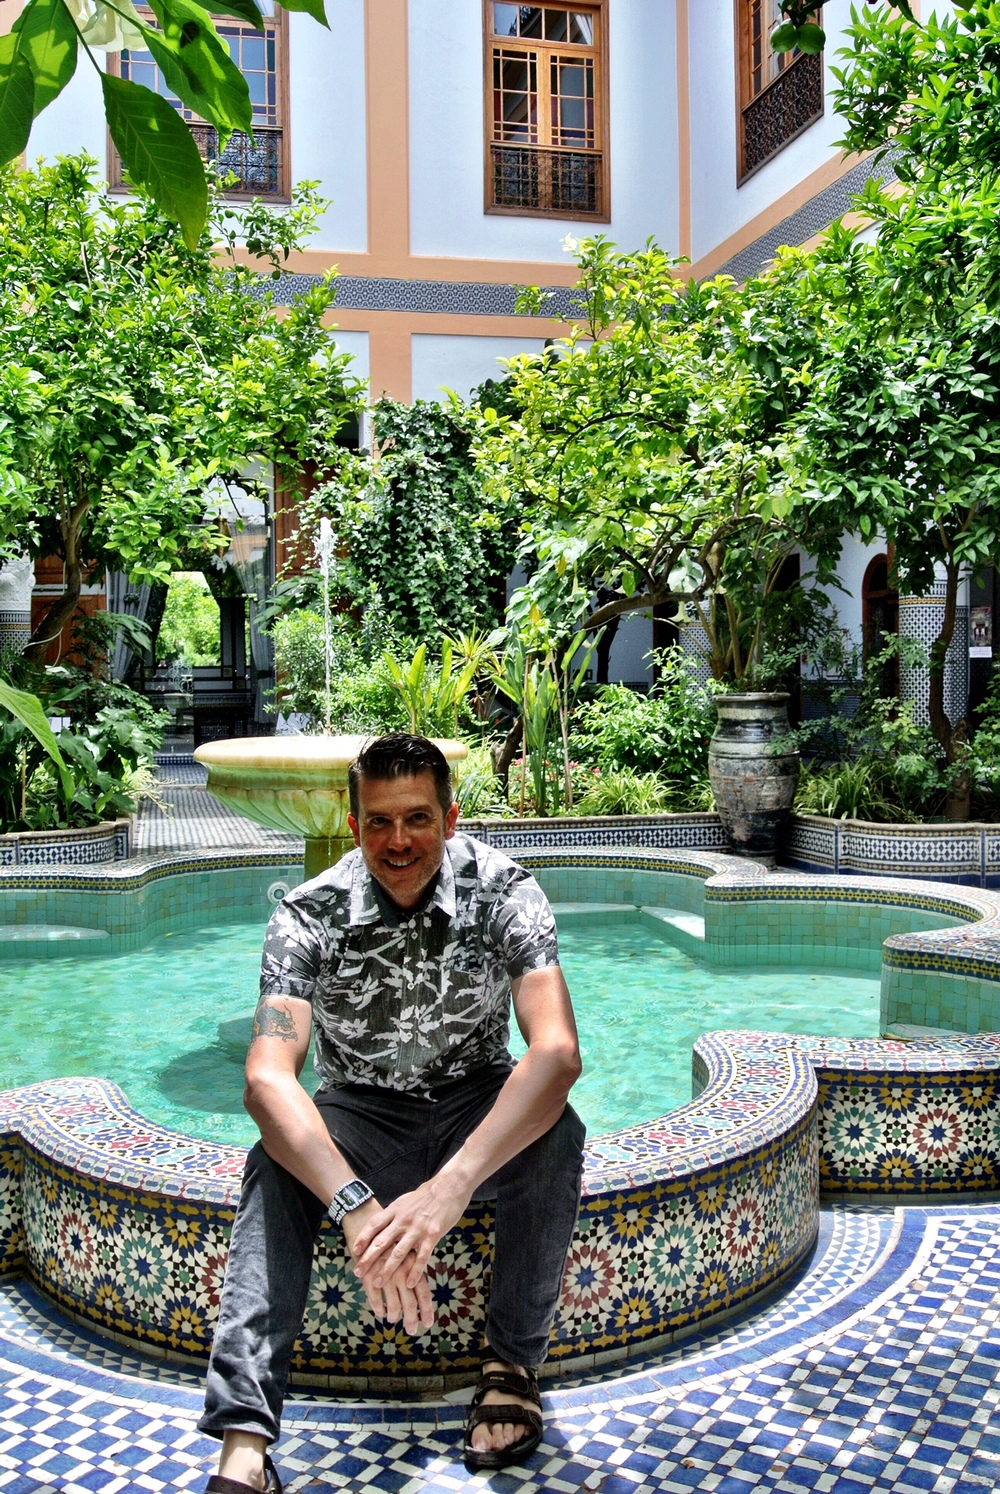 Wally enjoying the beautifully tiled courtyard fountain